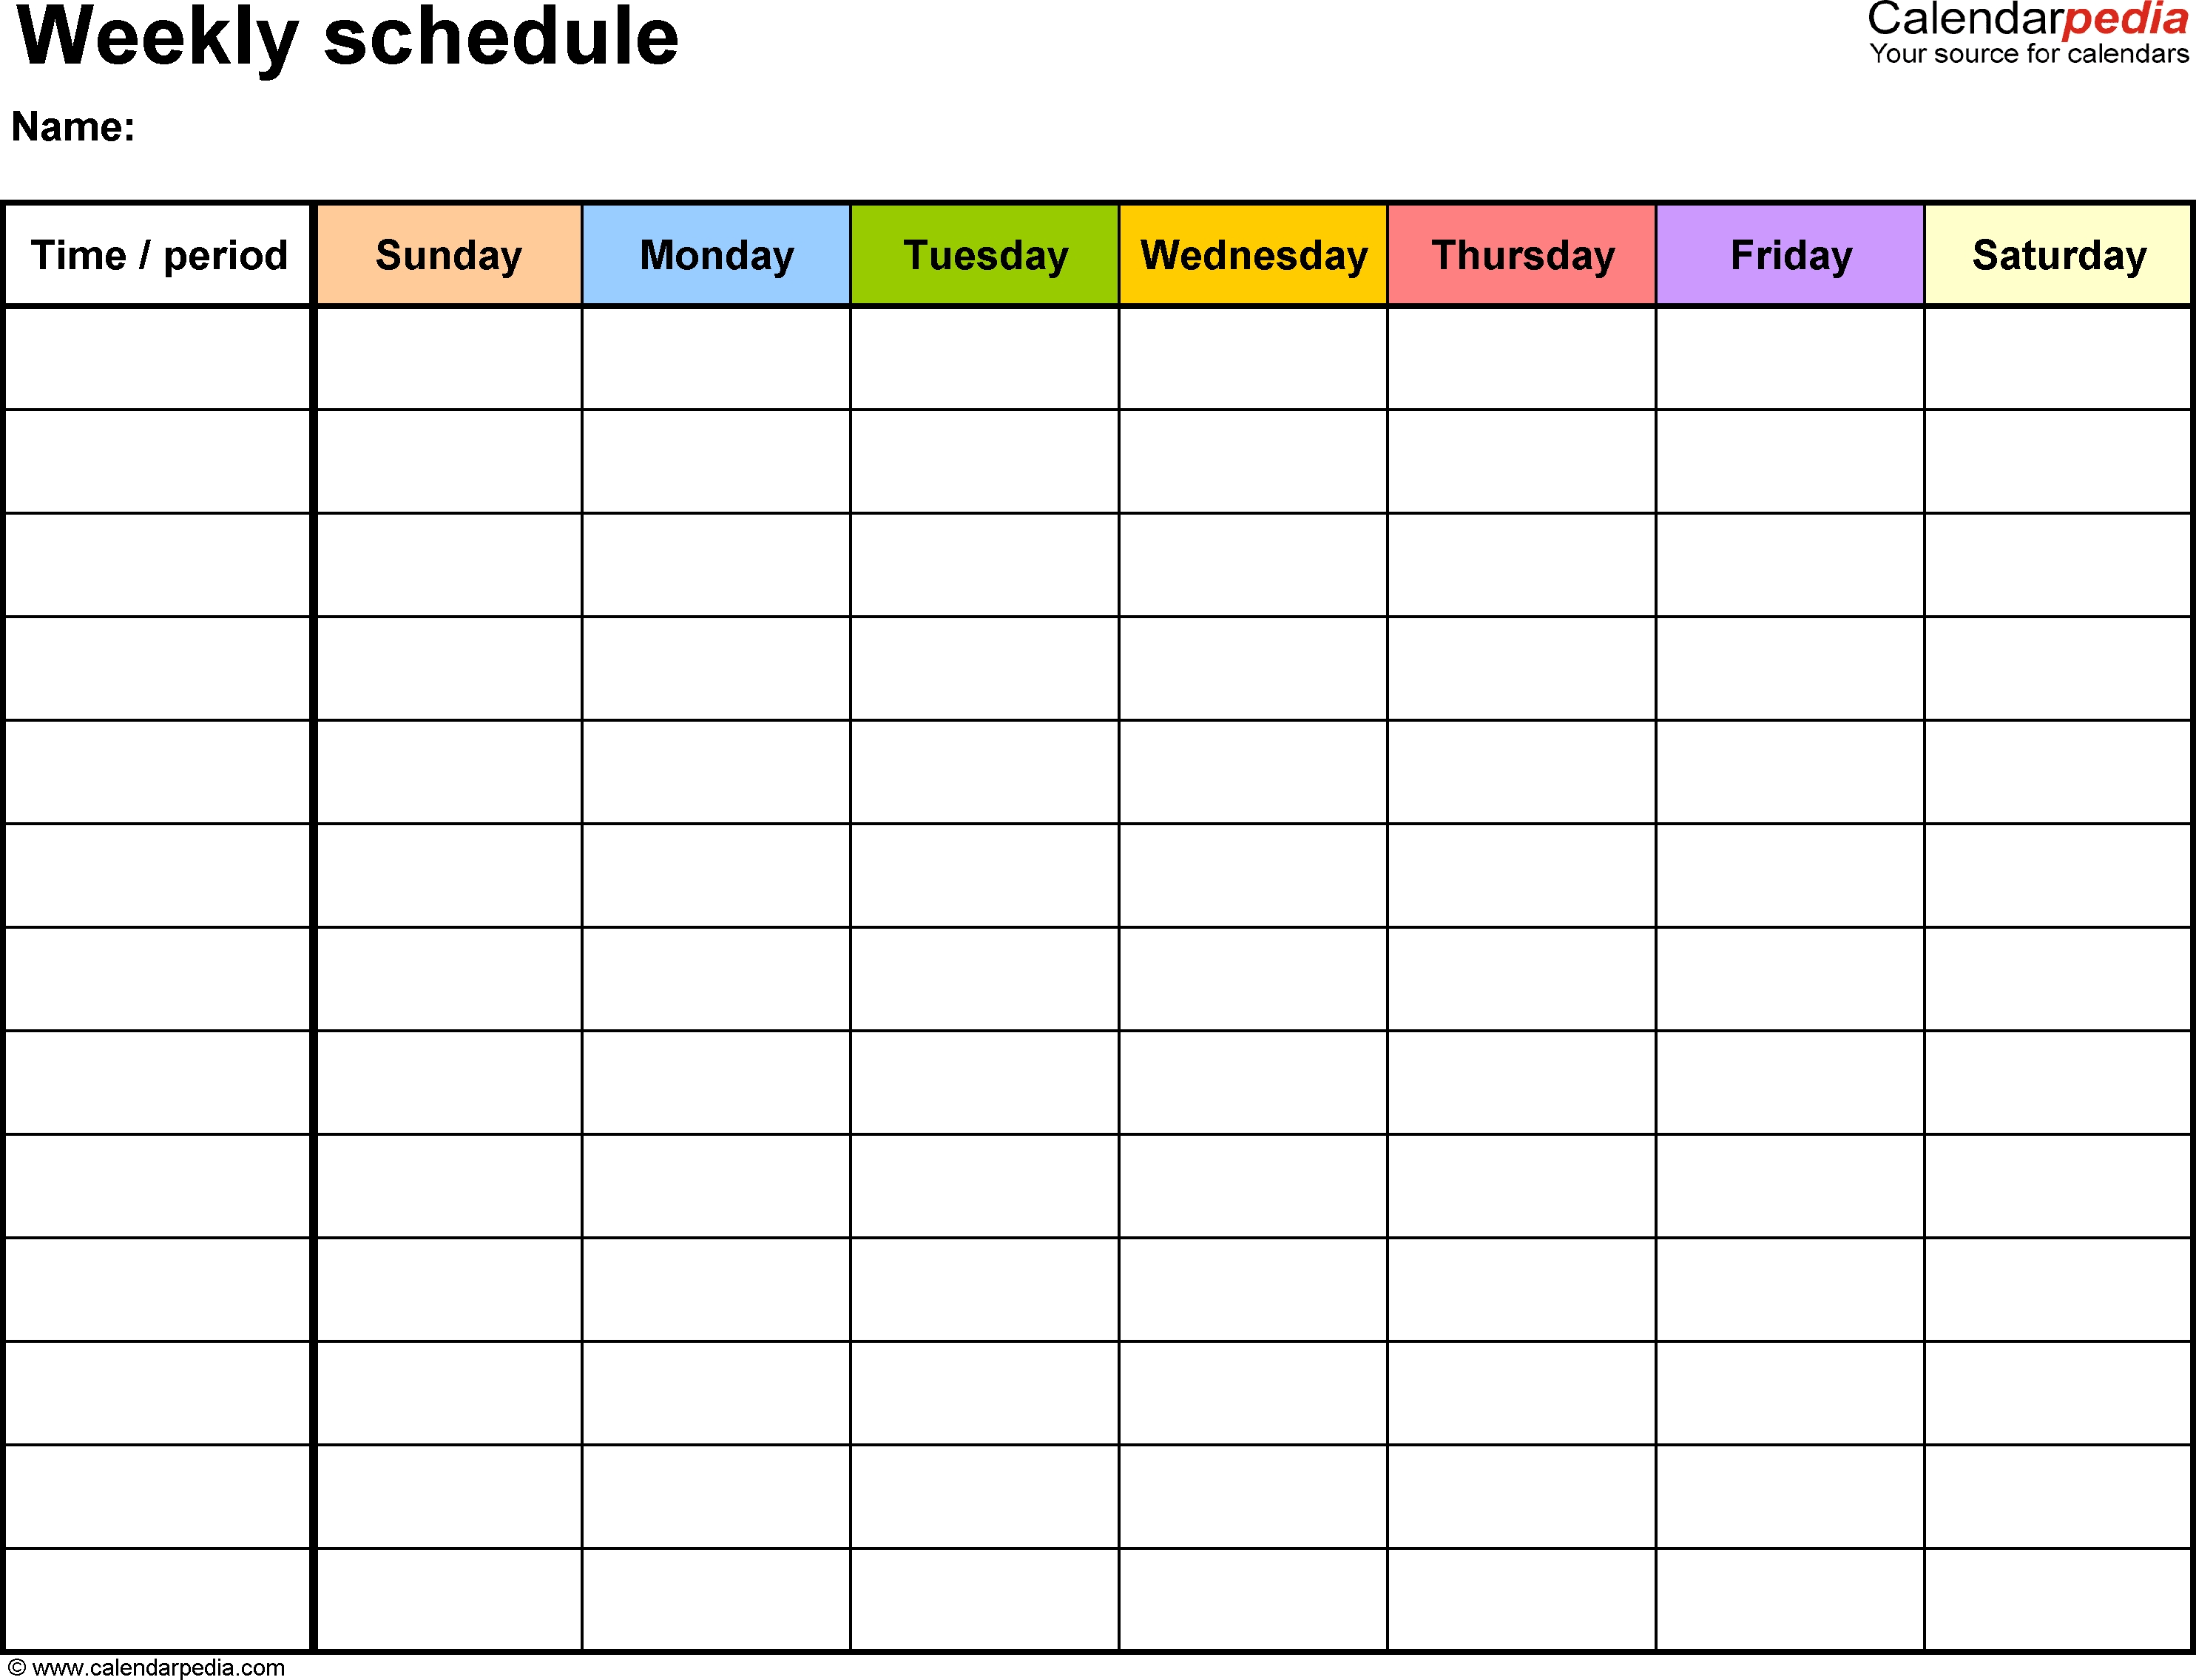 Free Weekly Schedule Templates For Excel - 18 Templates with regard to Excel Calendar Template 6 Weeks